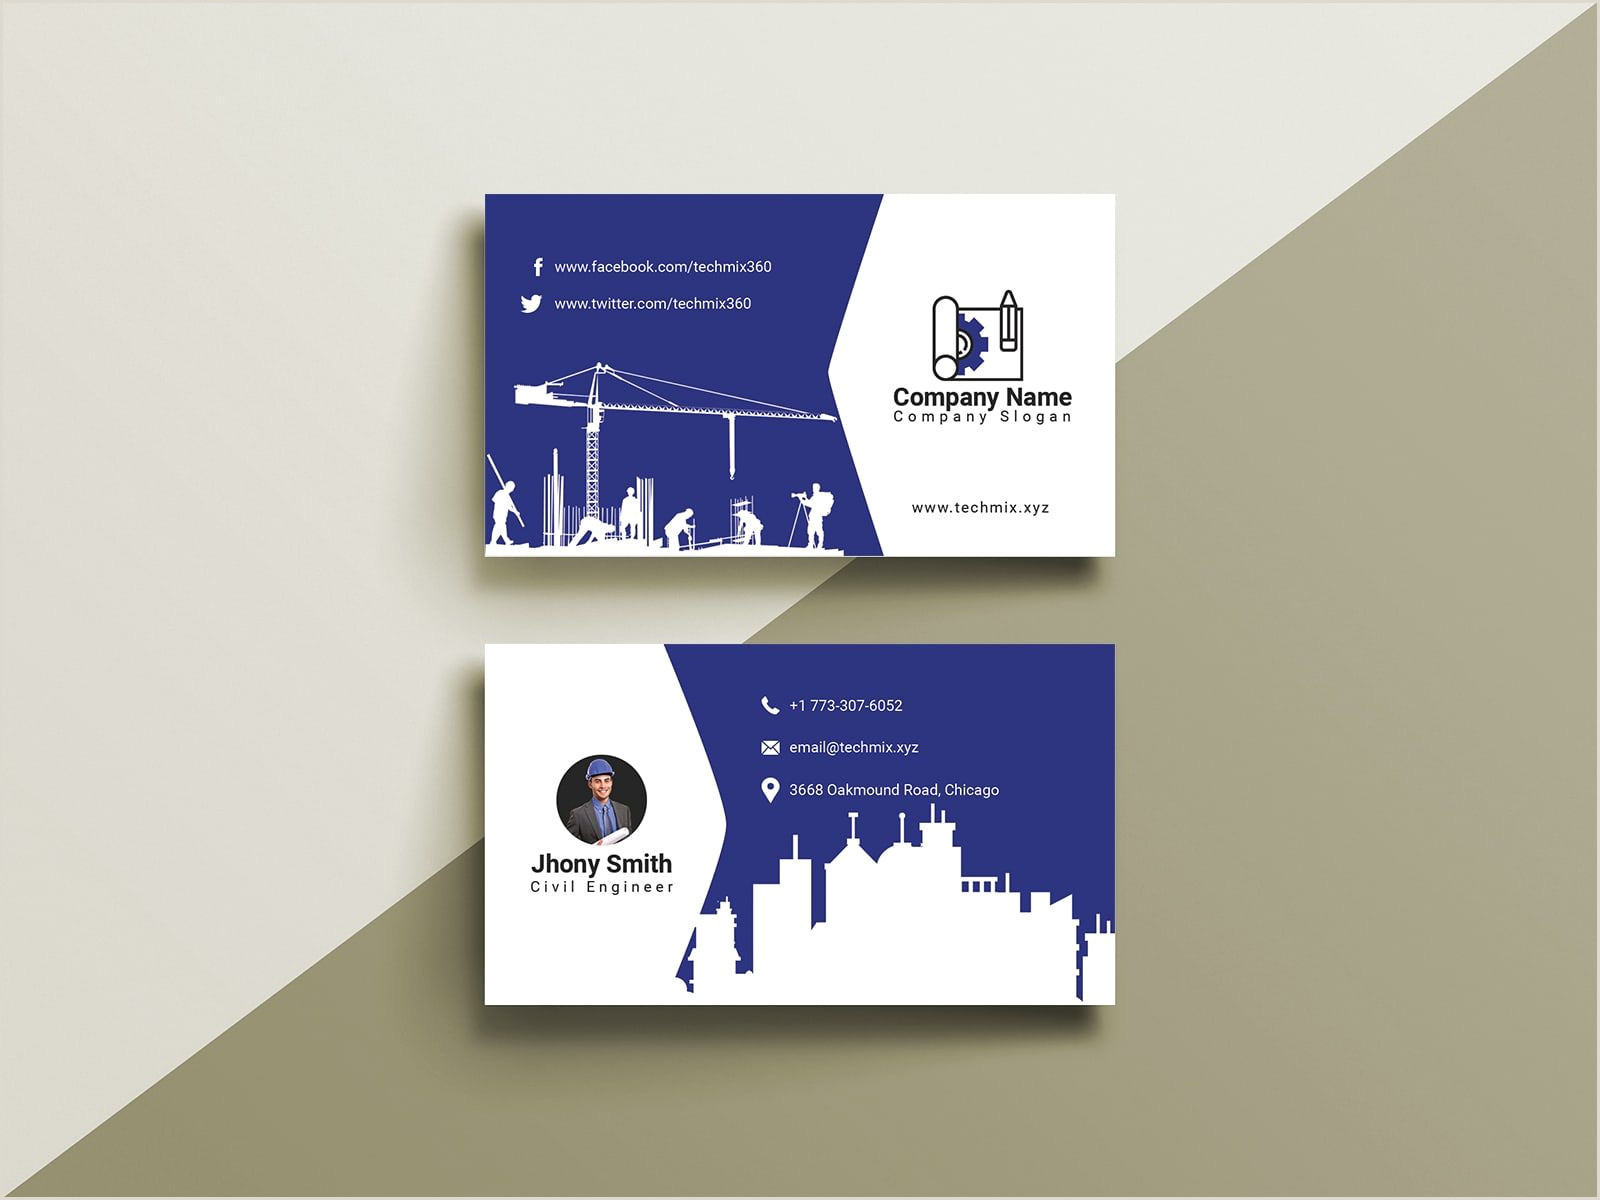 Top Best Business Cards 10 Civil Engineer Business Cards Images